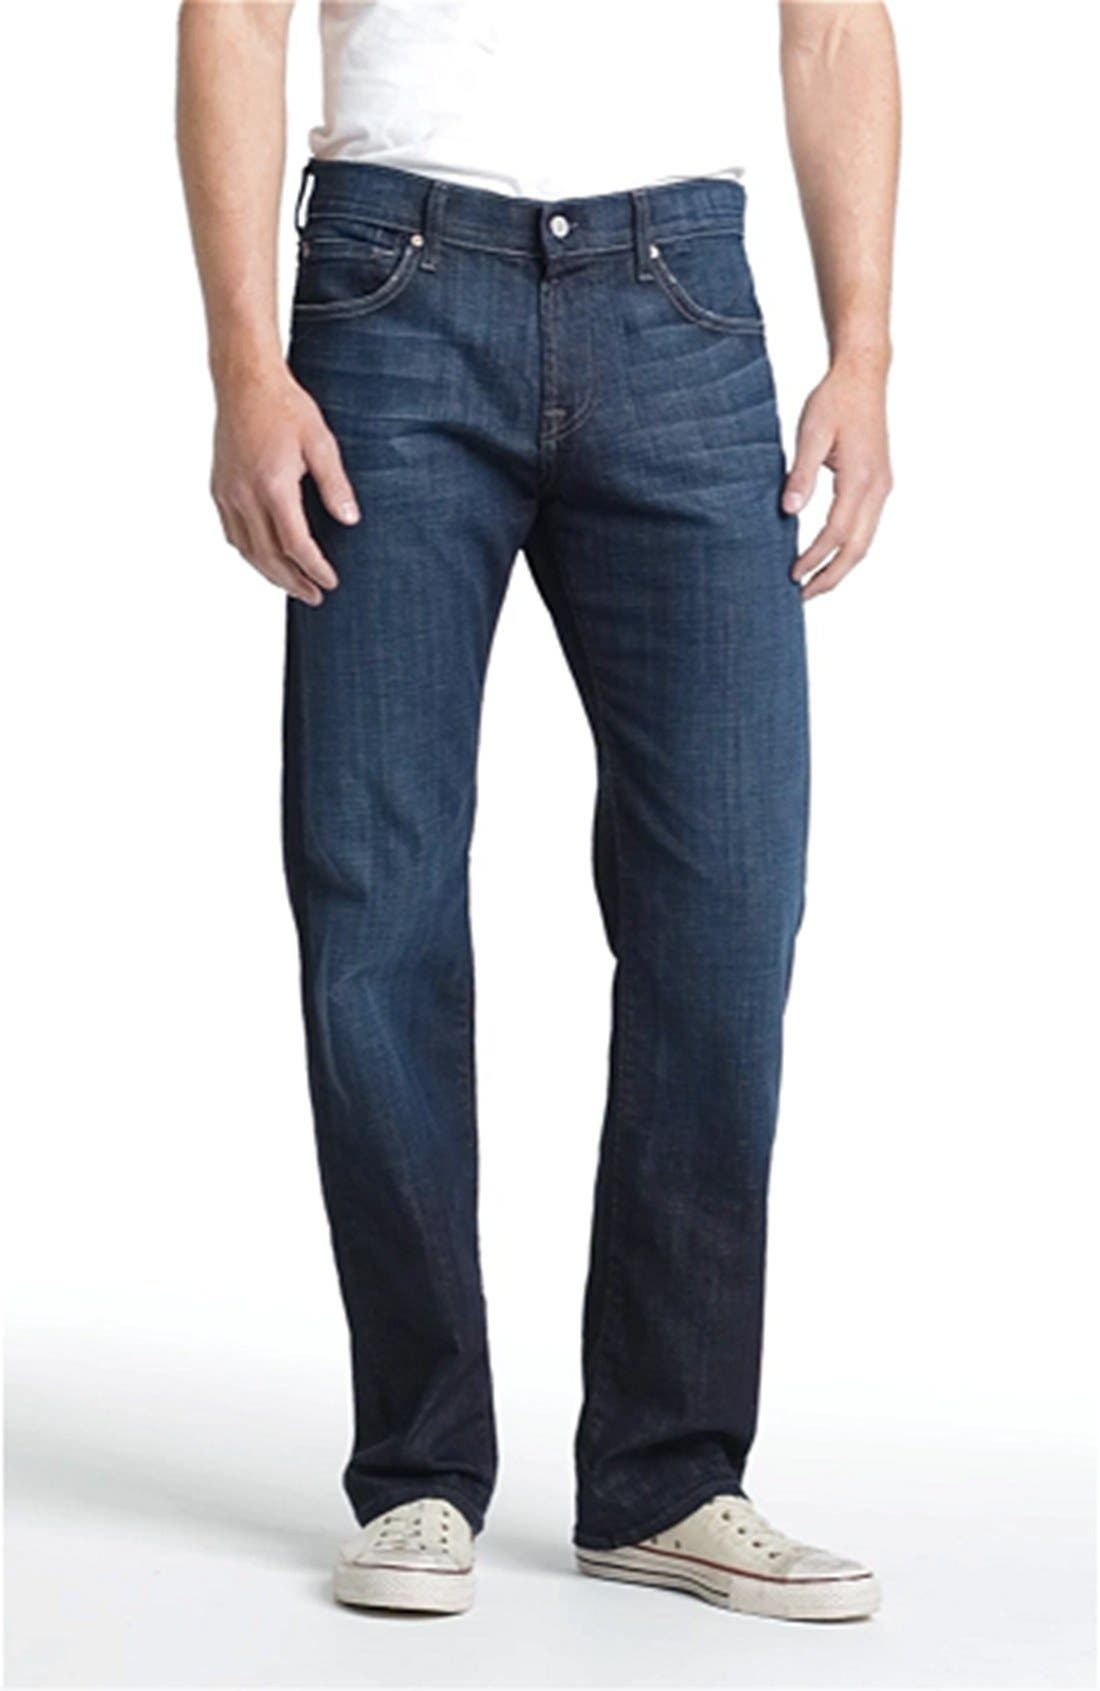 Austyn Relaxed Straight Leg Jeans,                             Alternate thumbnail 3, color,                             488